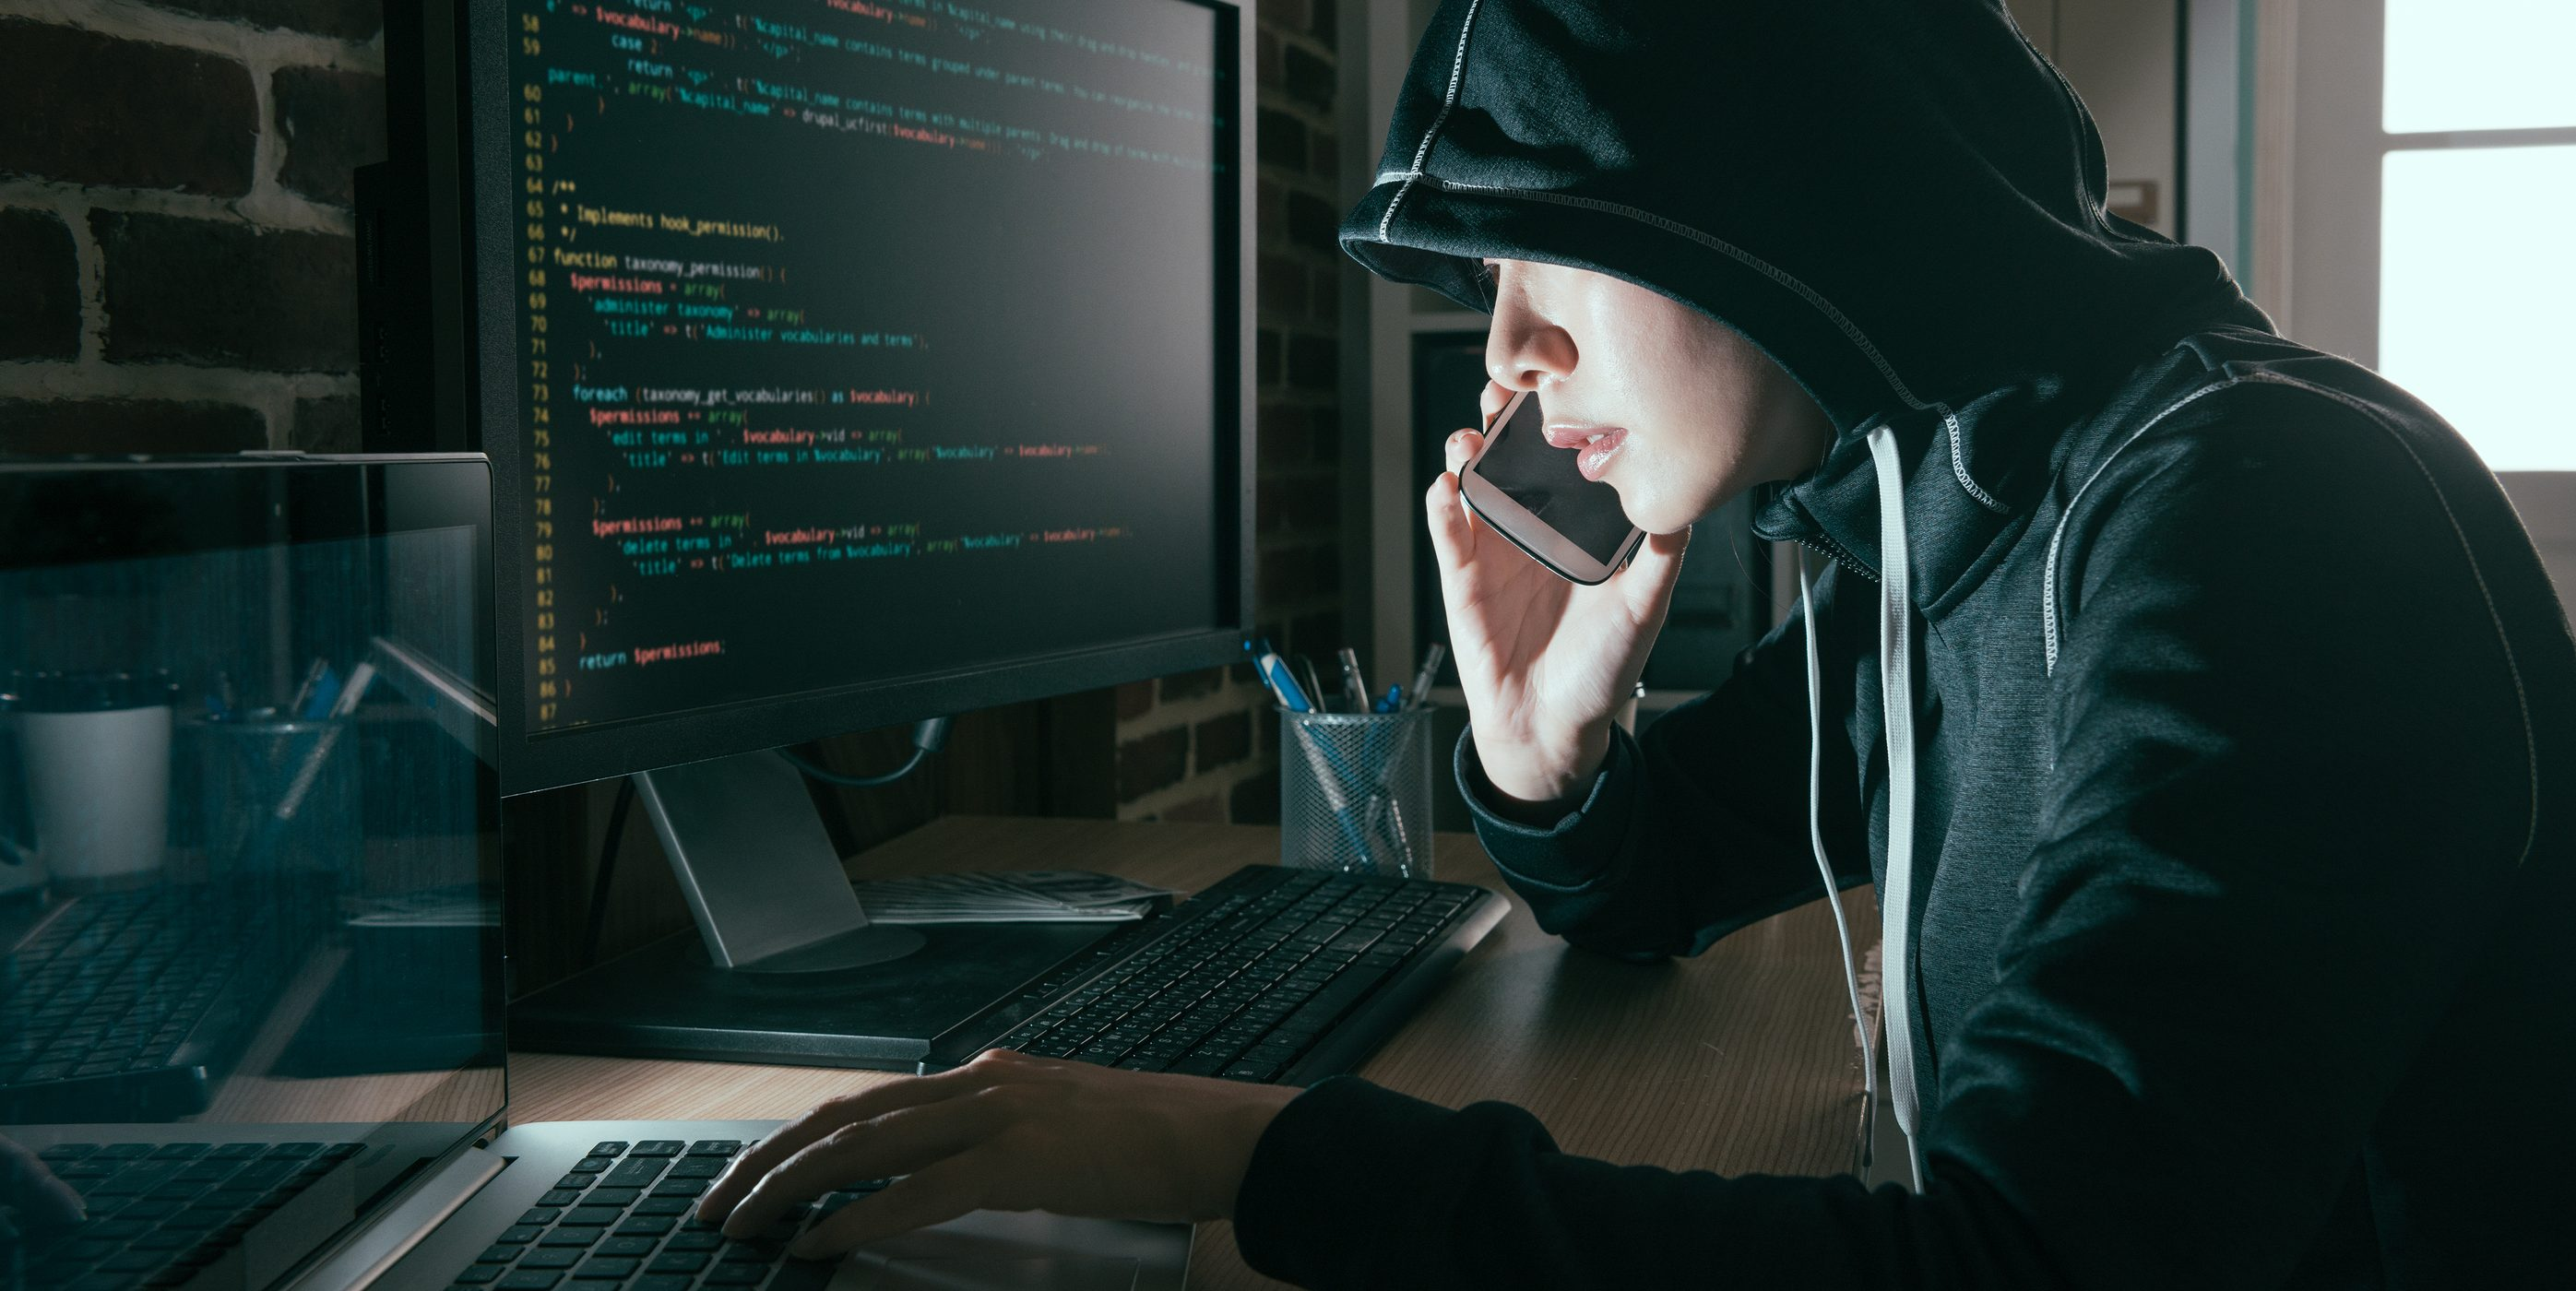 News Alert: What You Need to Know about Chinese Hackers APT 10 (& Your IT Security)